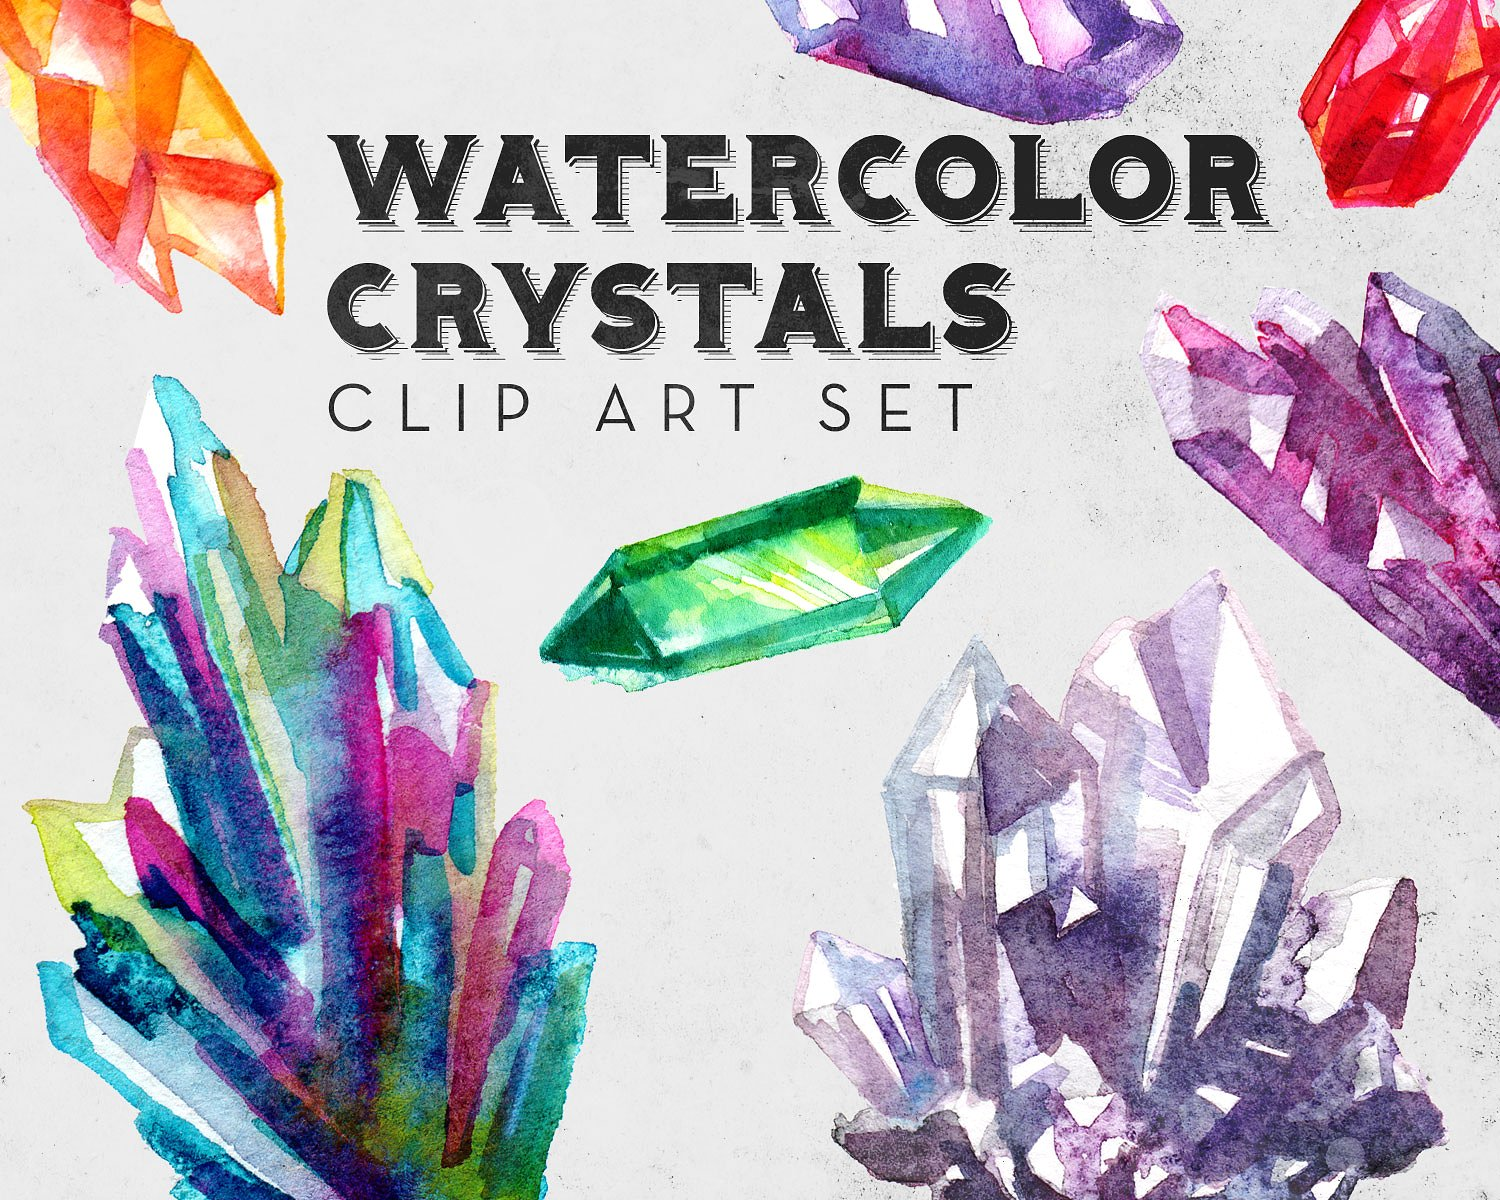 Crystal clipart amethyst crystal. Watercolor crystals set illustrations